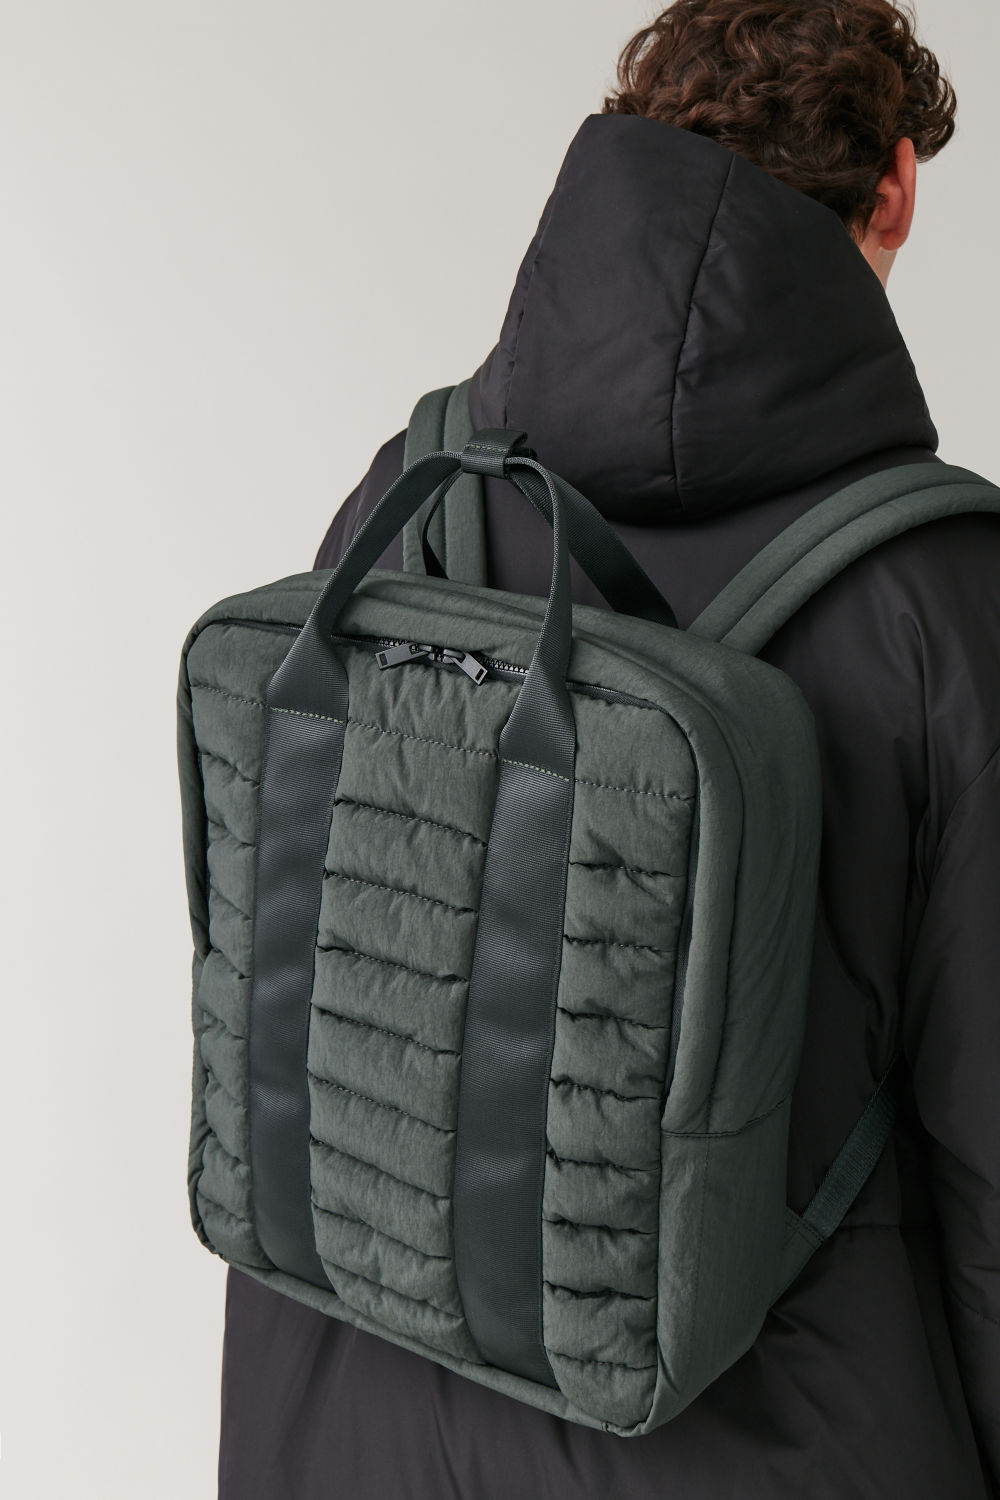 Padded Backpack by Cos